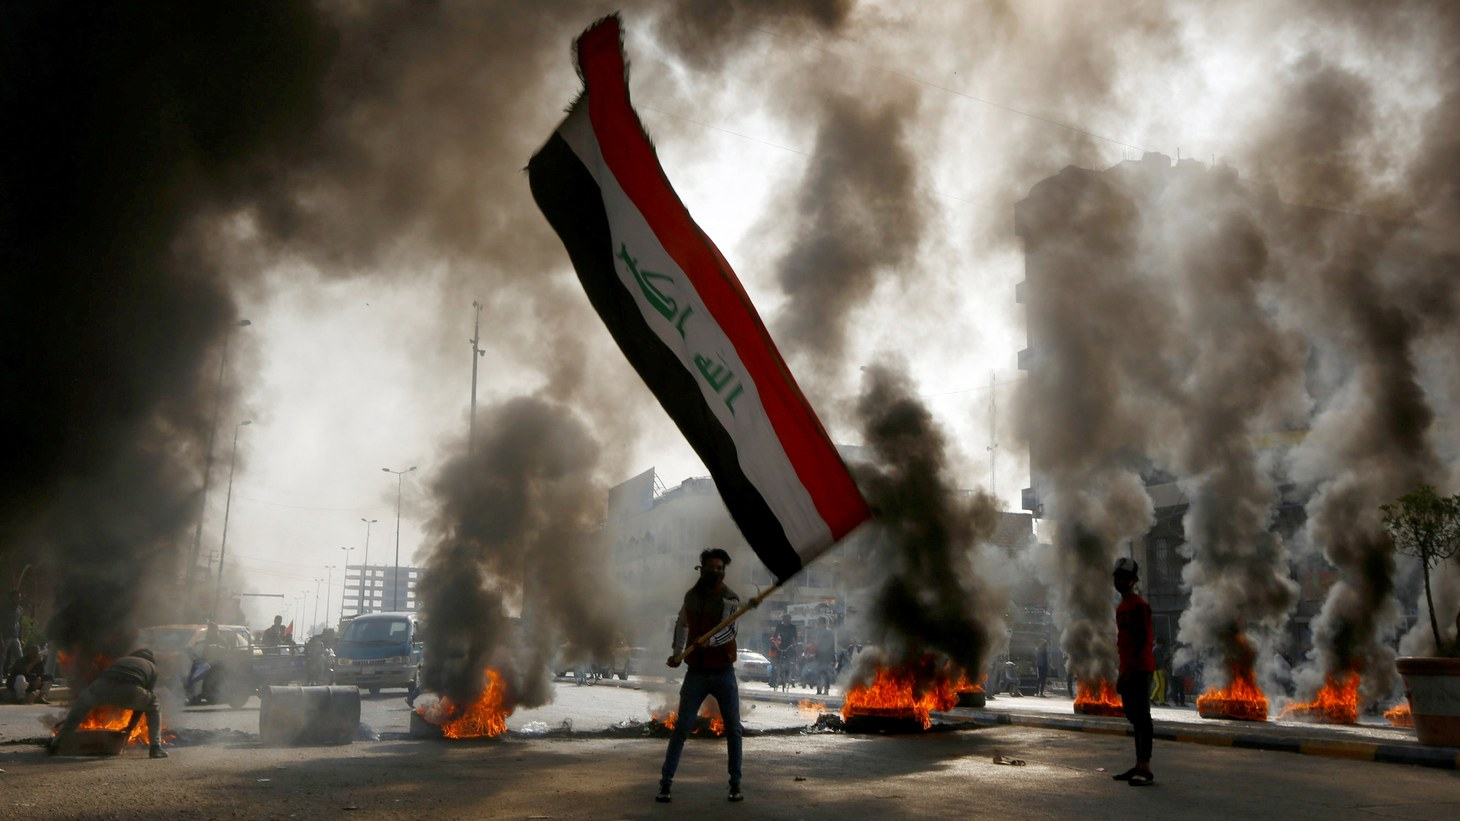 A protester holds an Iraqi flag amid a cloud of smoke from burning tires during ongoing anti-government protests in Najaf, Iraq November 26, 2019.